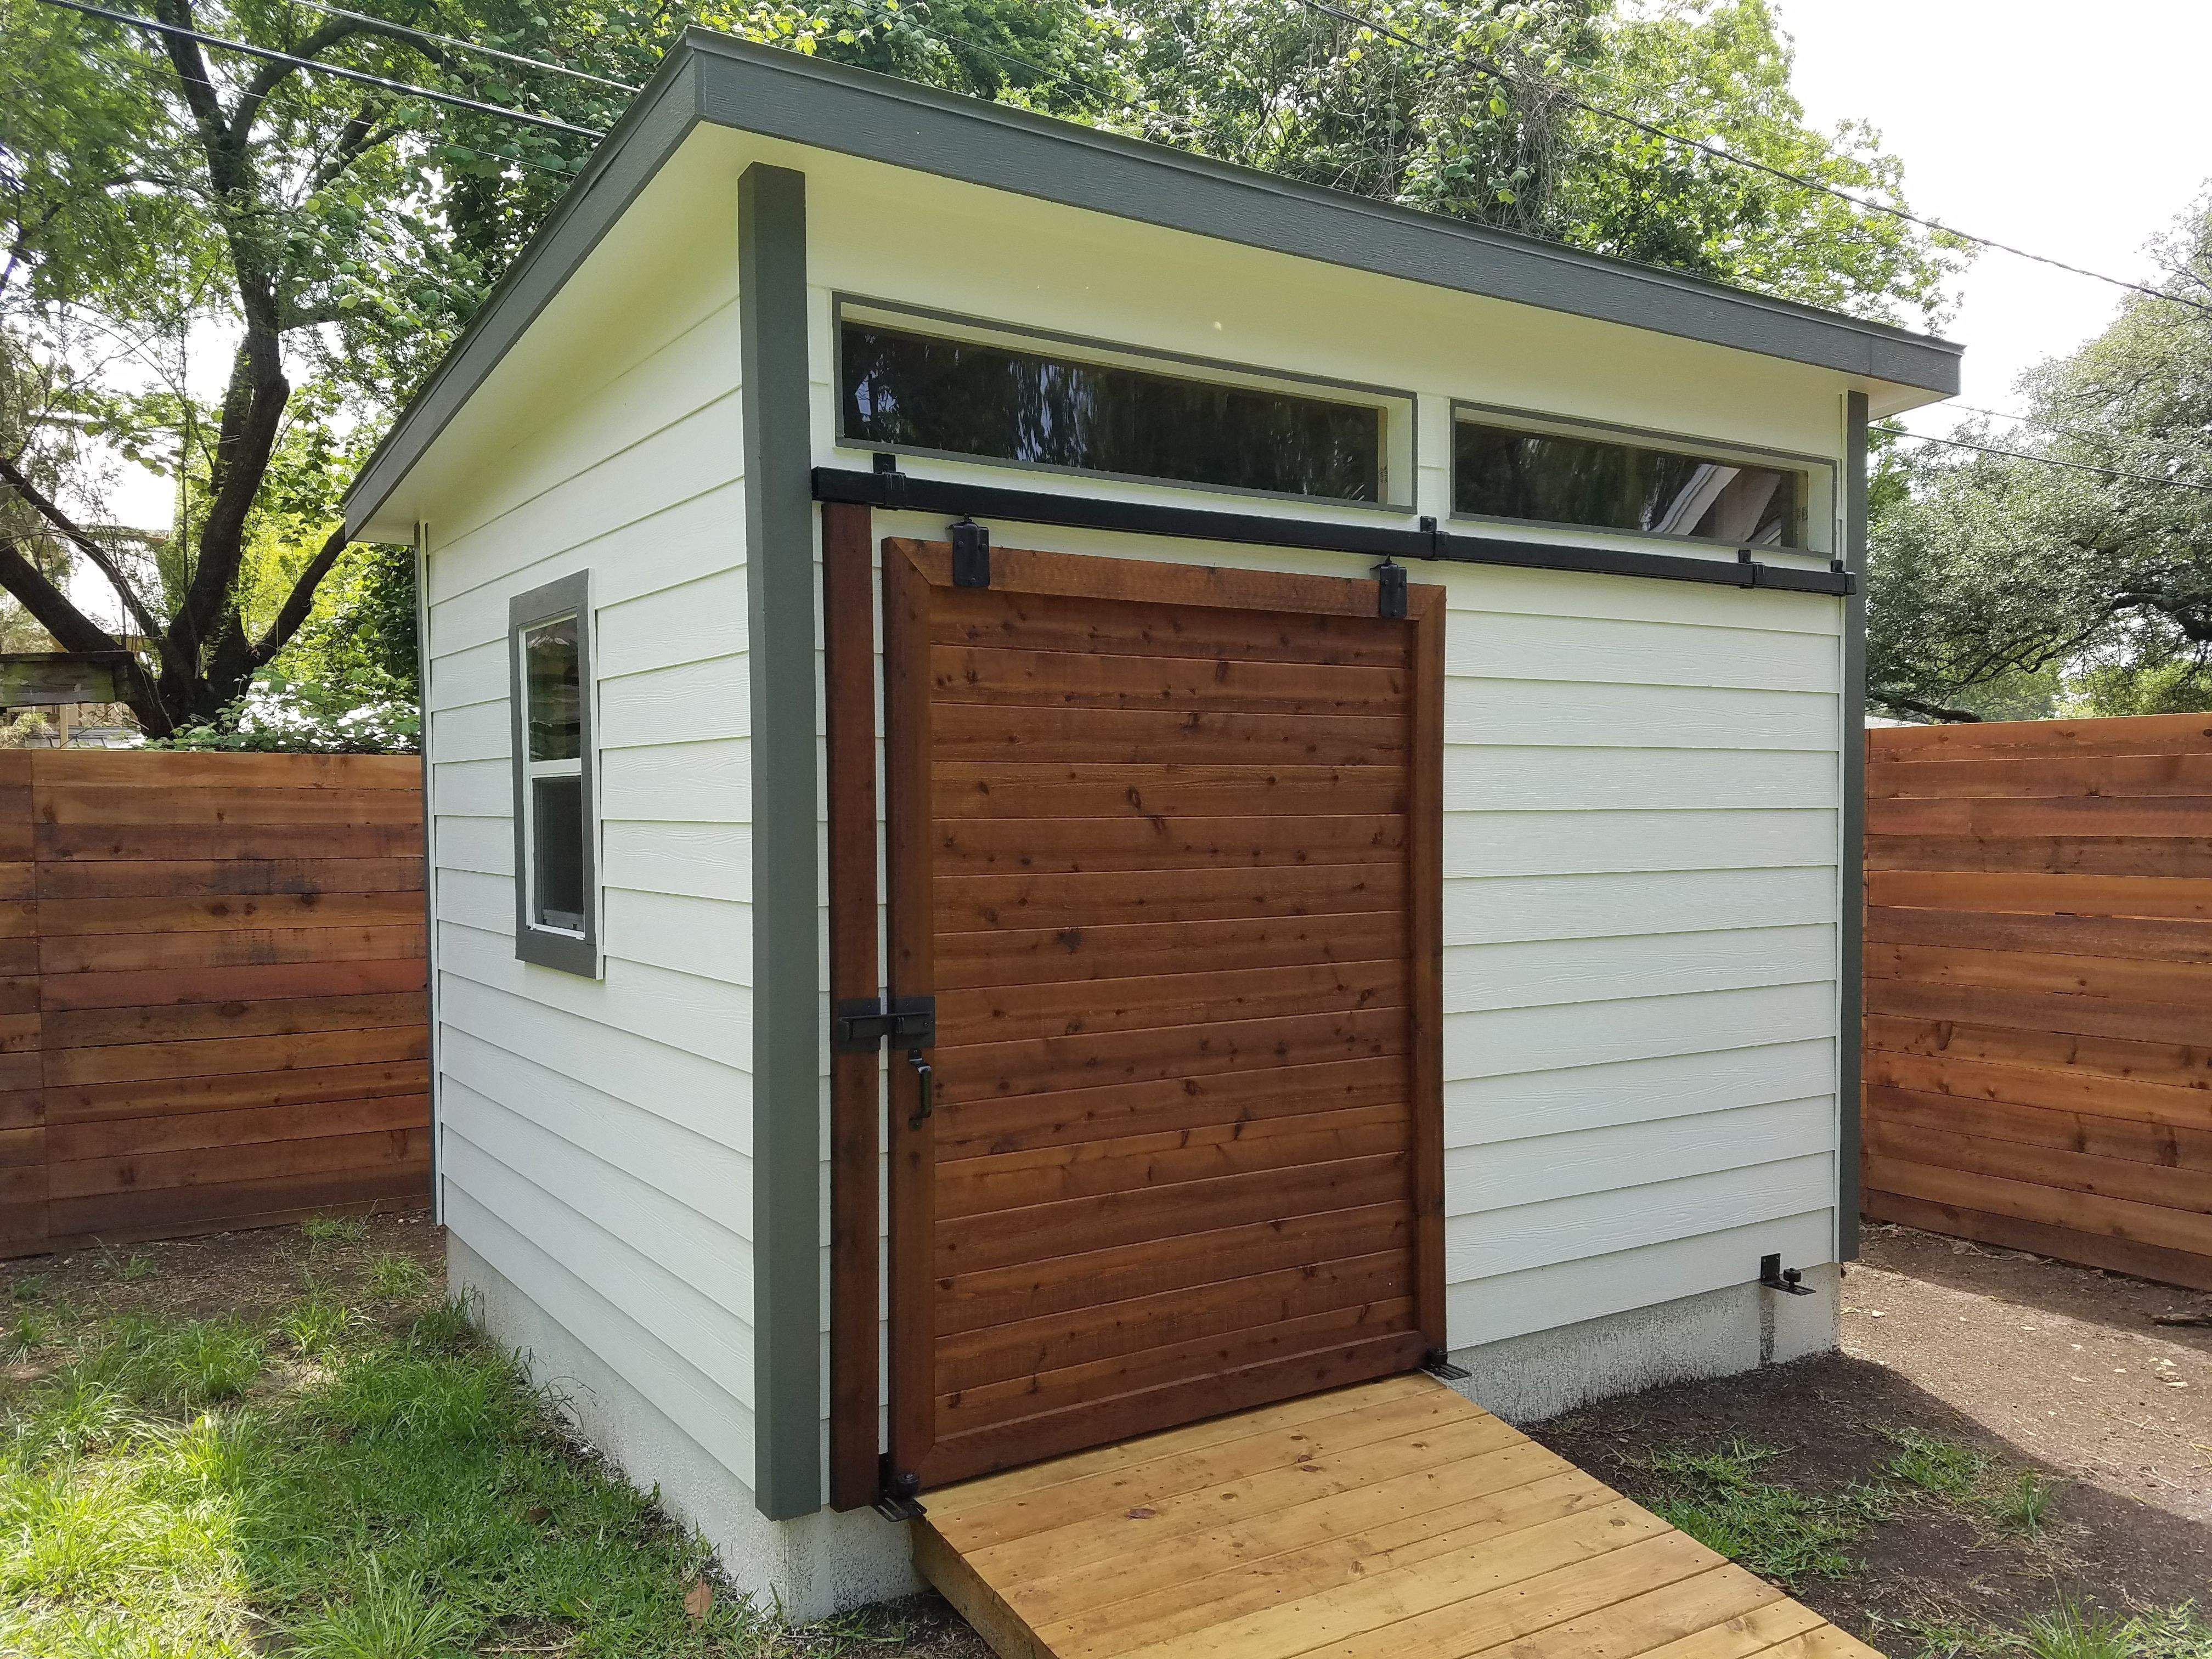 33 Smart Storage Shed Outdoor Ideas For Your Home Smart